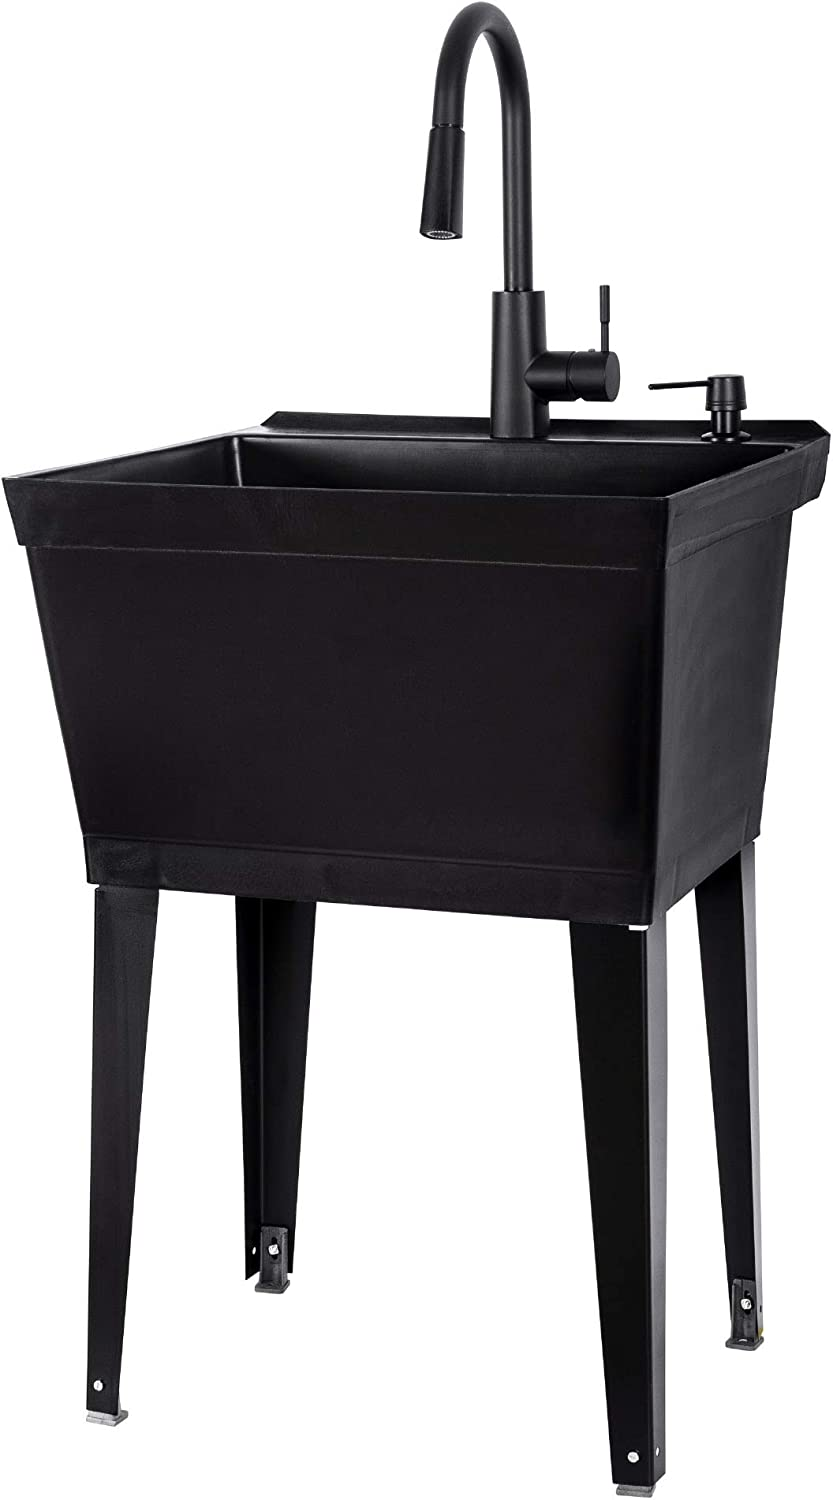 All Black Utility Sink with High Arc Black Kitchen Faucet By VETTA - Pull Down Sprayer Spout, Heavy Duty Slop Sinks for Washing Room, Basement, Garage, or Shop, Free Standing Laundry Tub Deep Plastic